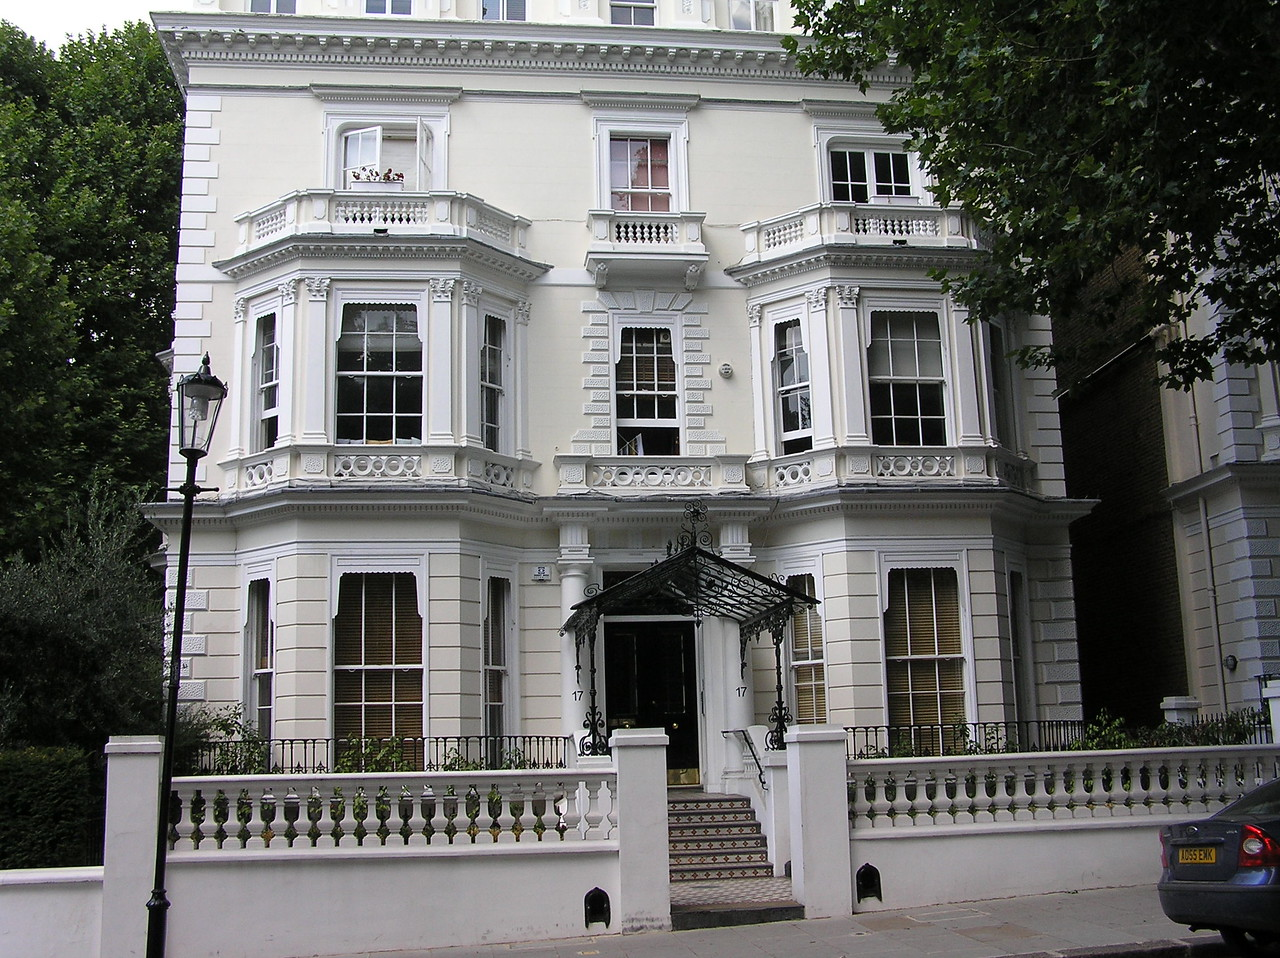 Despite Miss Piggy claiming to live here, it was actually the home of Neville and Dorcas, played by John Cleese and Joan Sanderson. Miss Piggy had to sneak in through a window after climbing up the left side of the building.